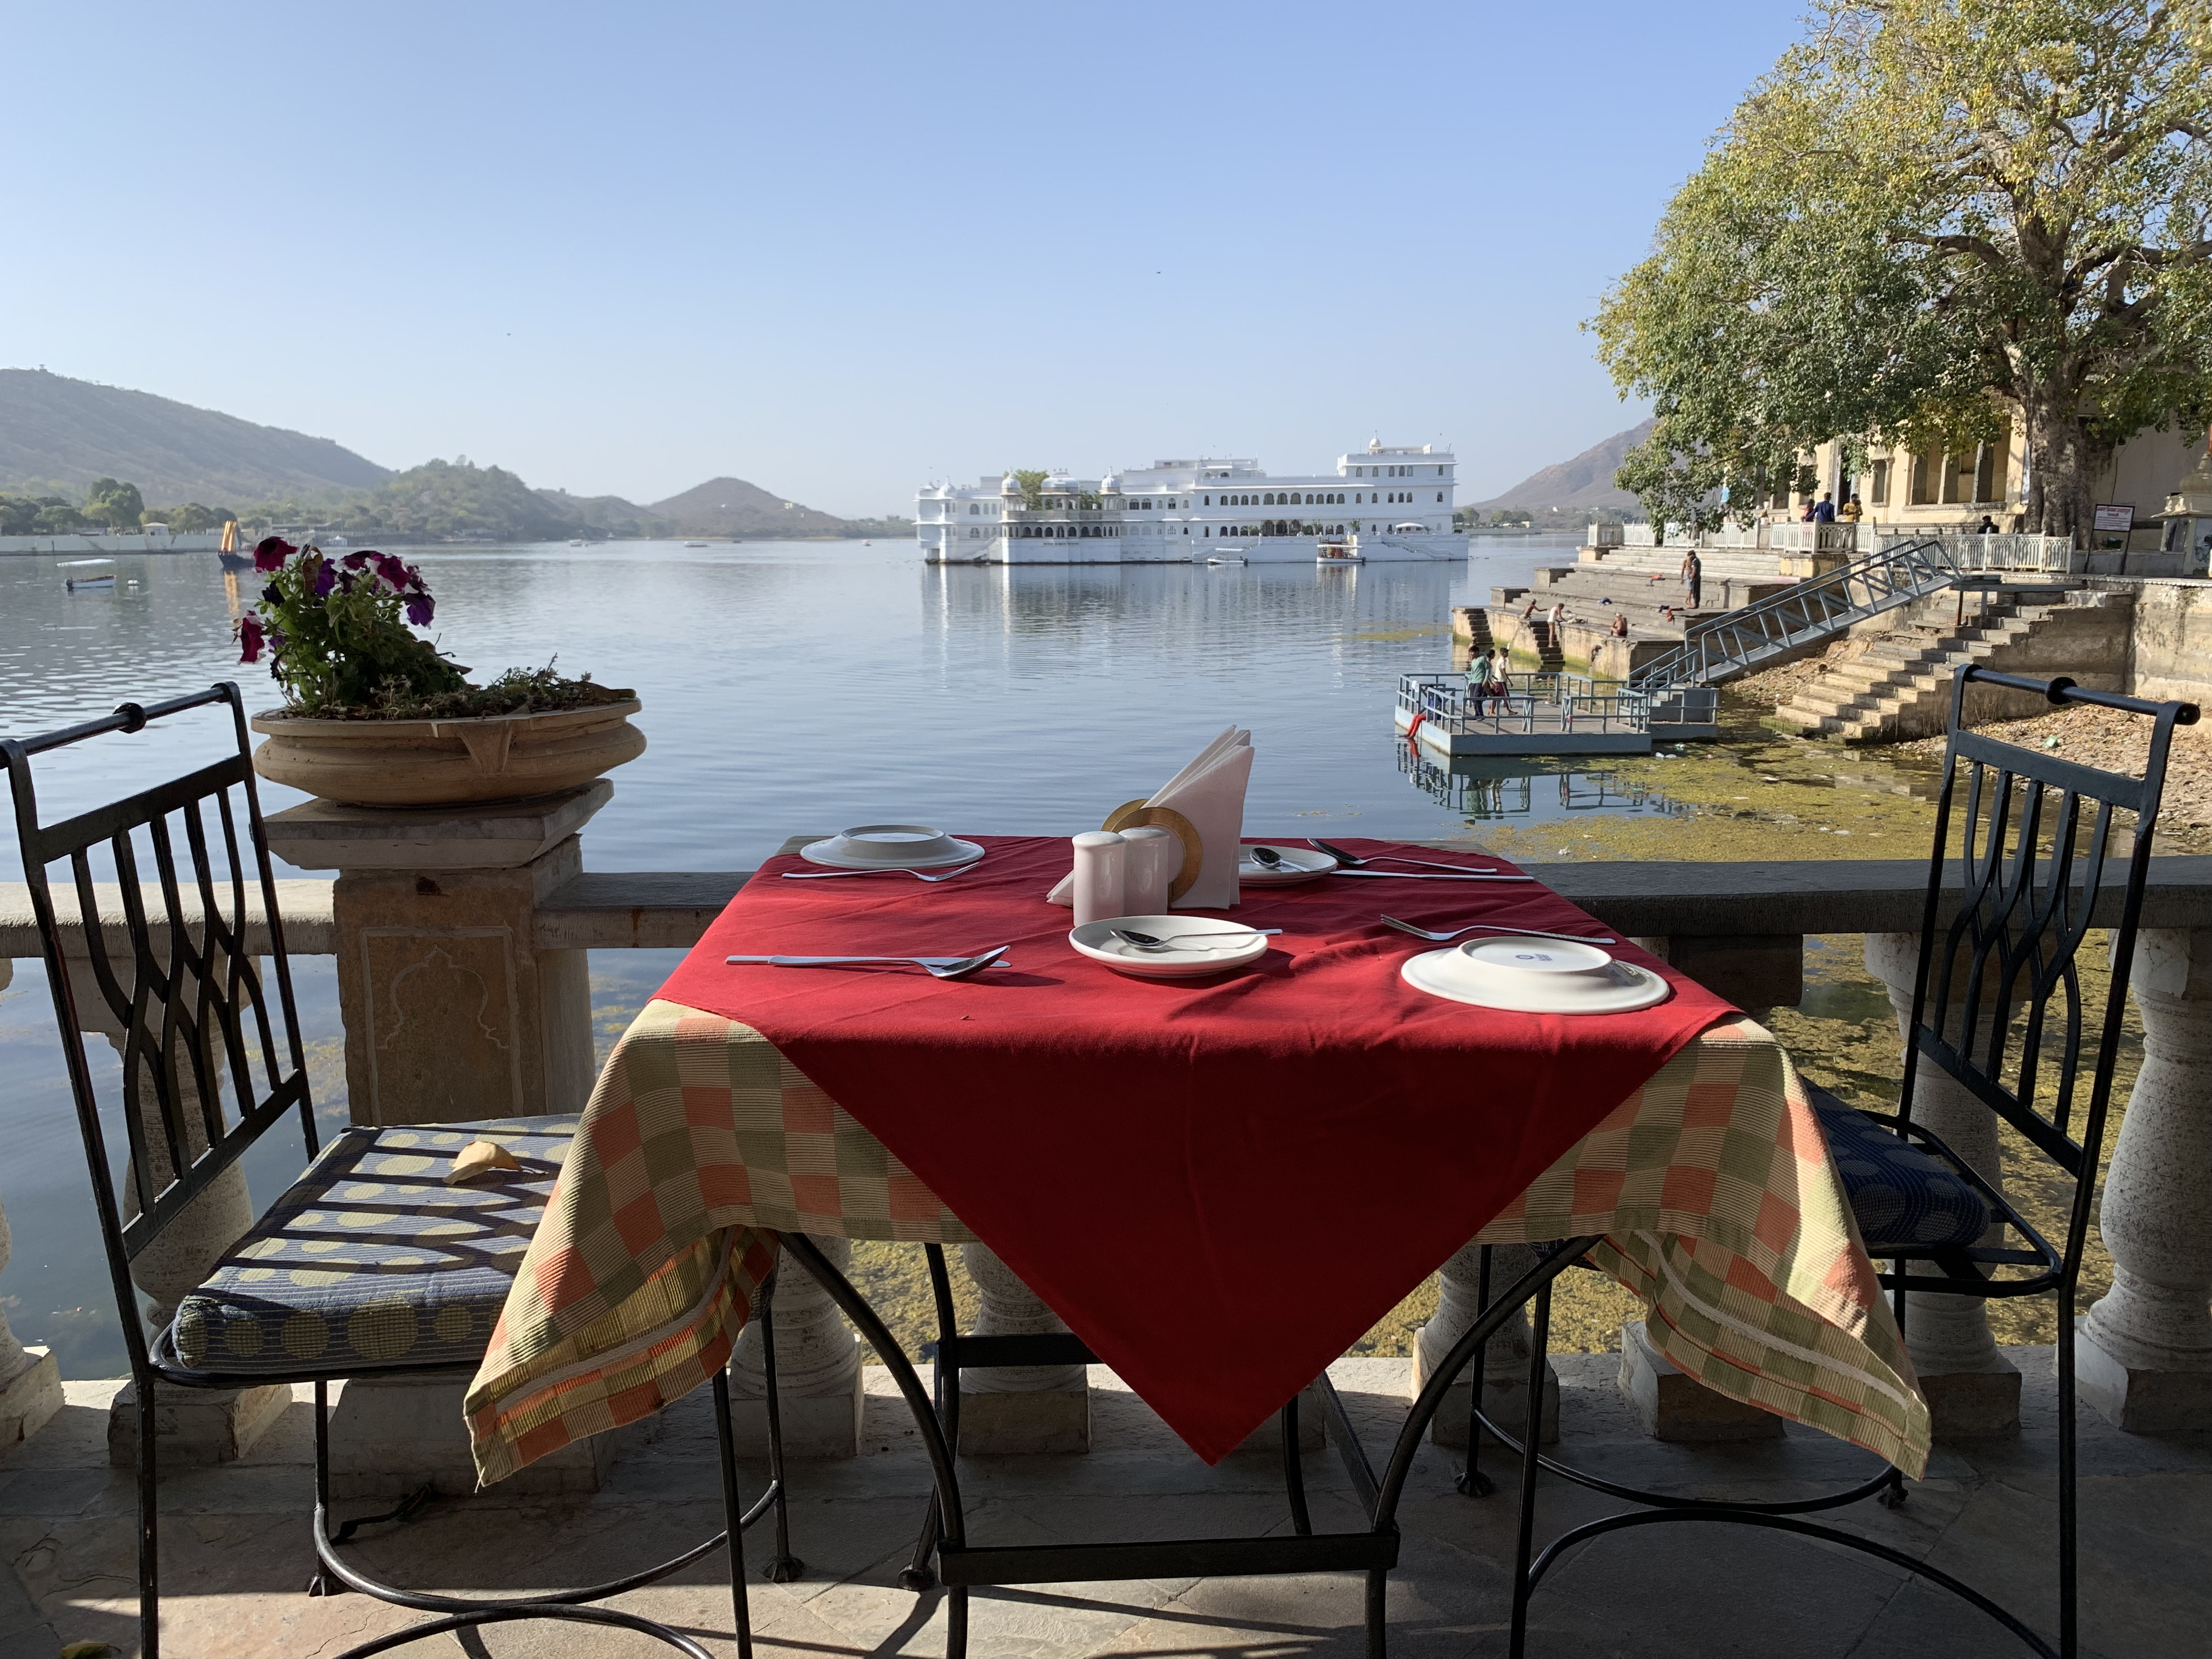 Dine with a beautiful view in Udaipur